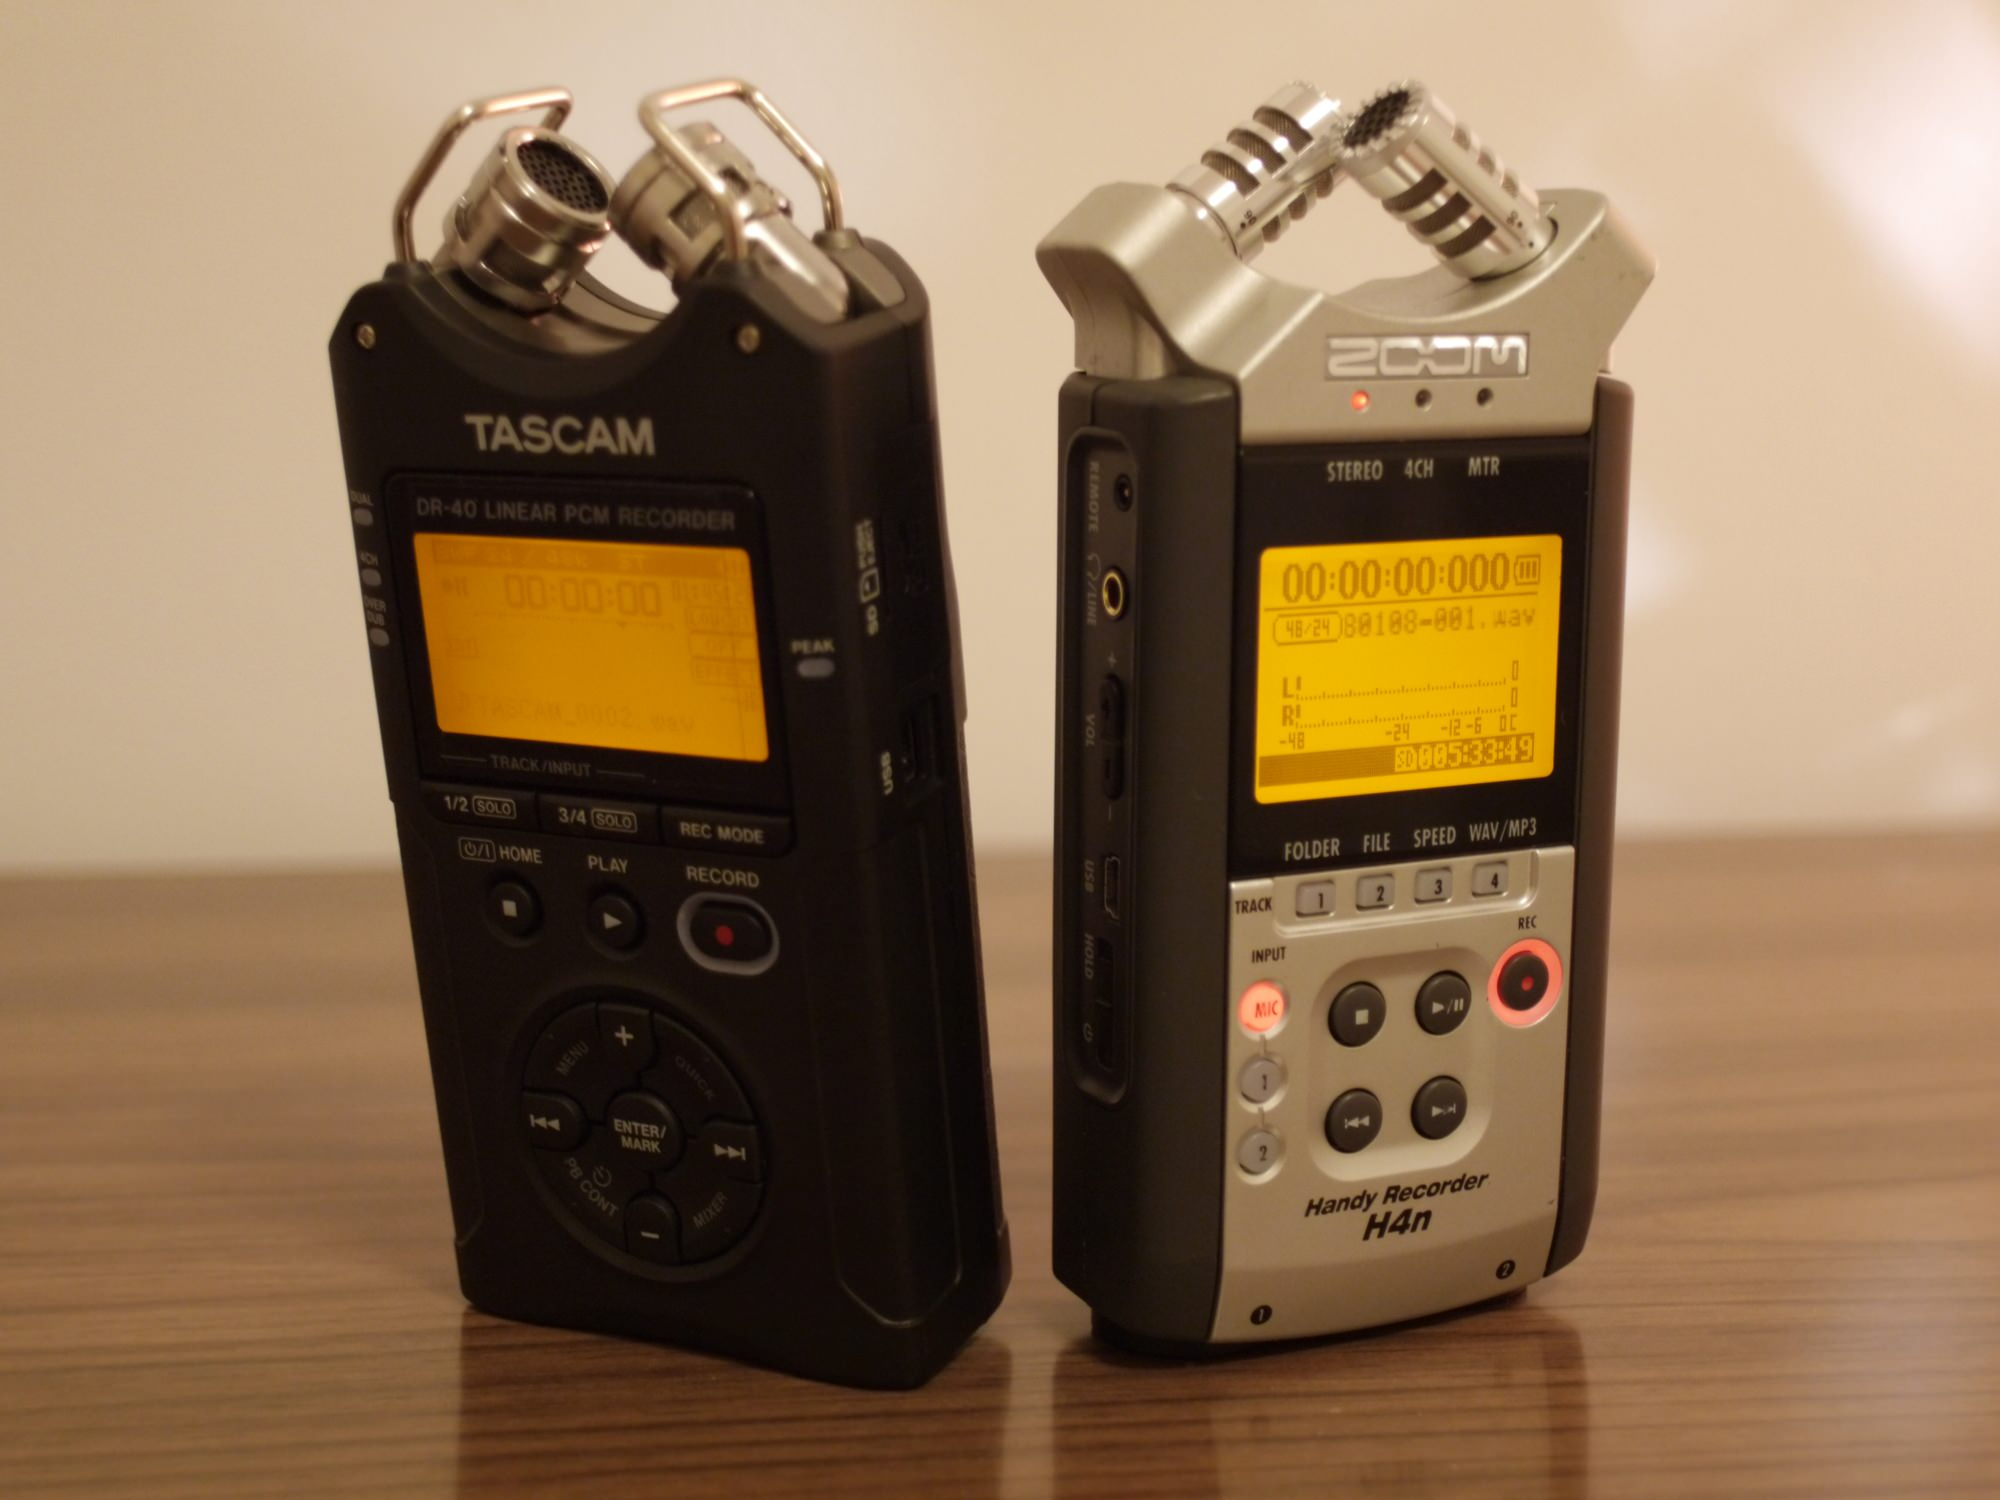 Tascam DR-40 compared to Zoom H4n